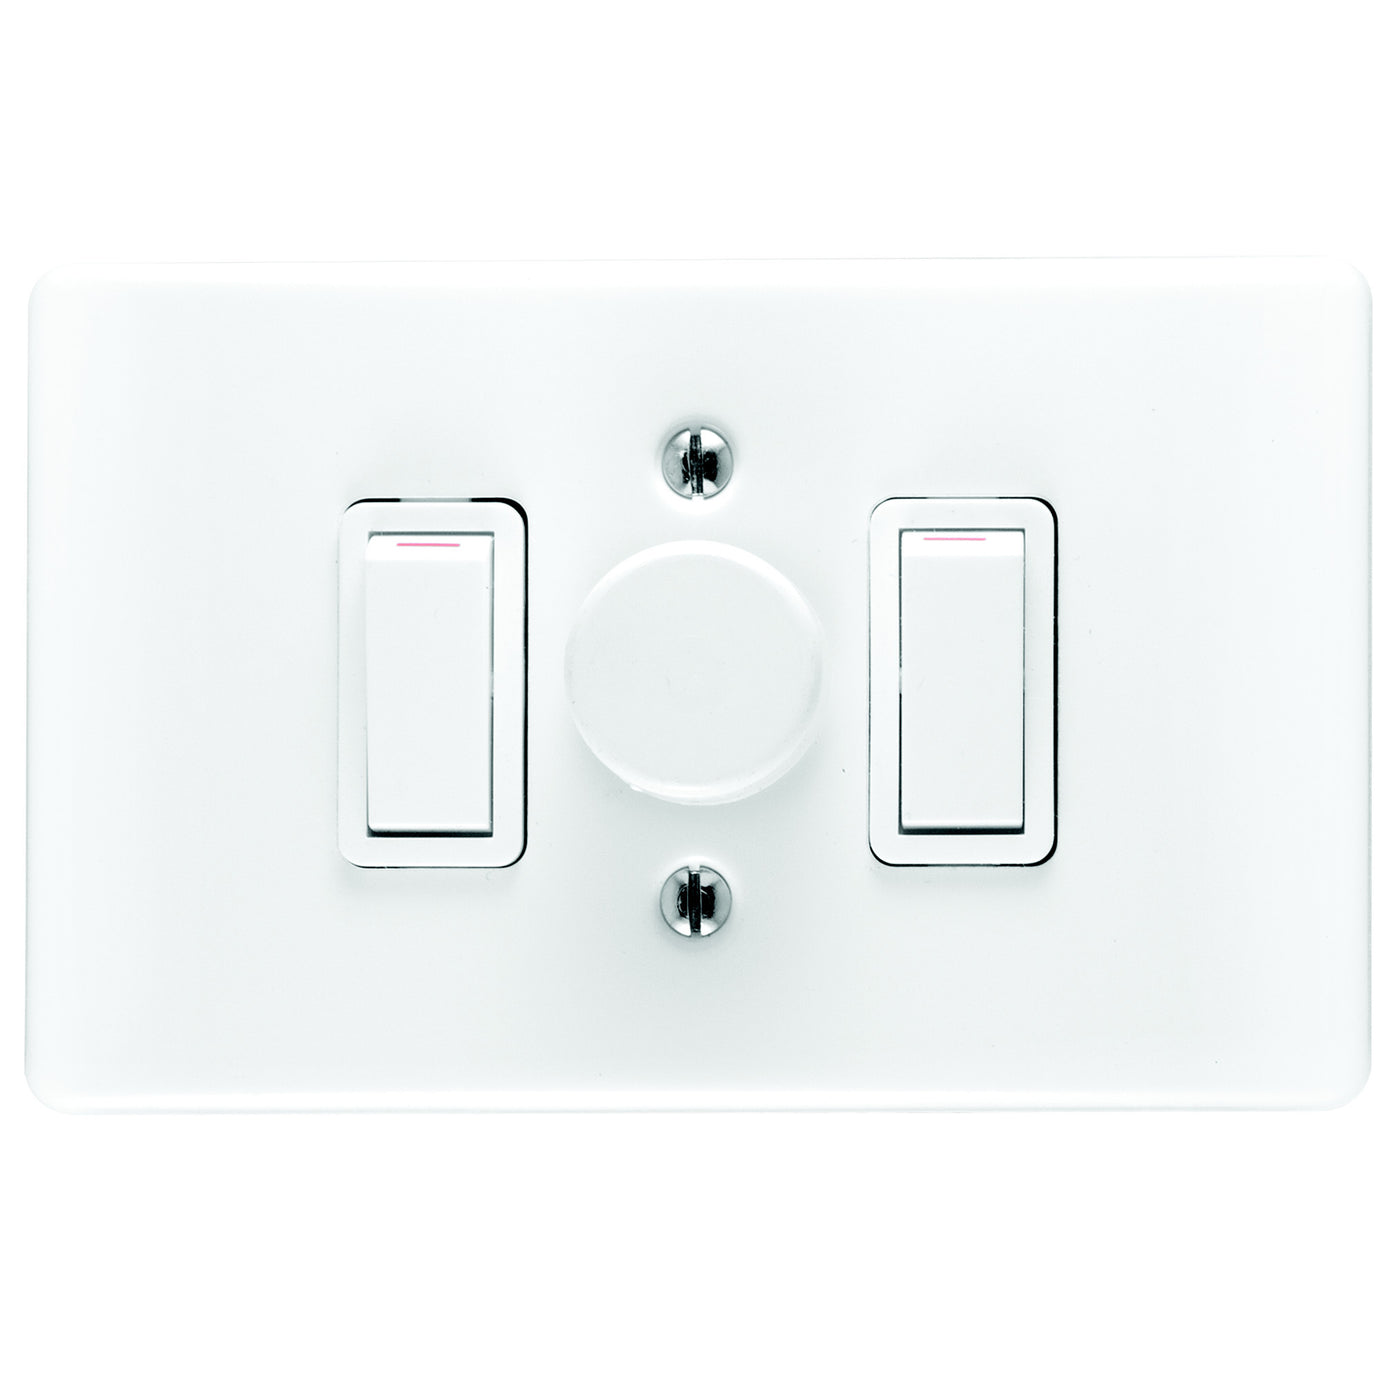 CRABTREE CLASSIC DIMMER SWITCH 2 LEVER + COVER 4X2 800W – Dynamic ...